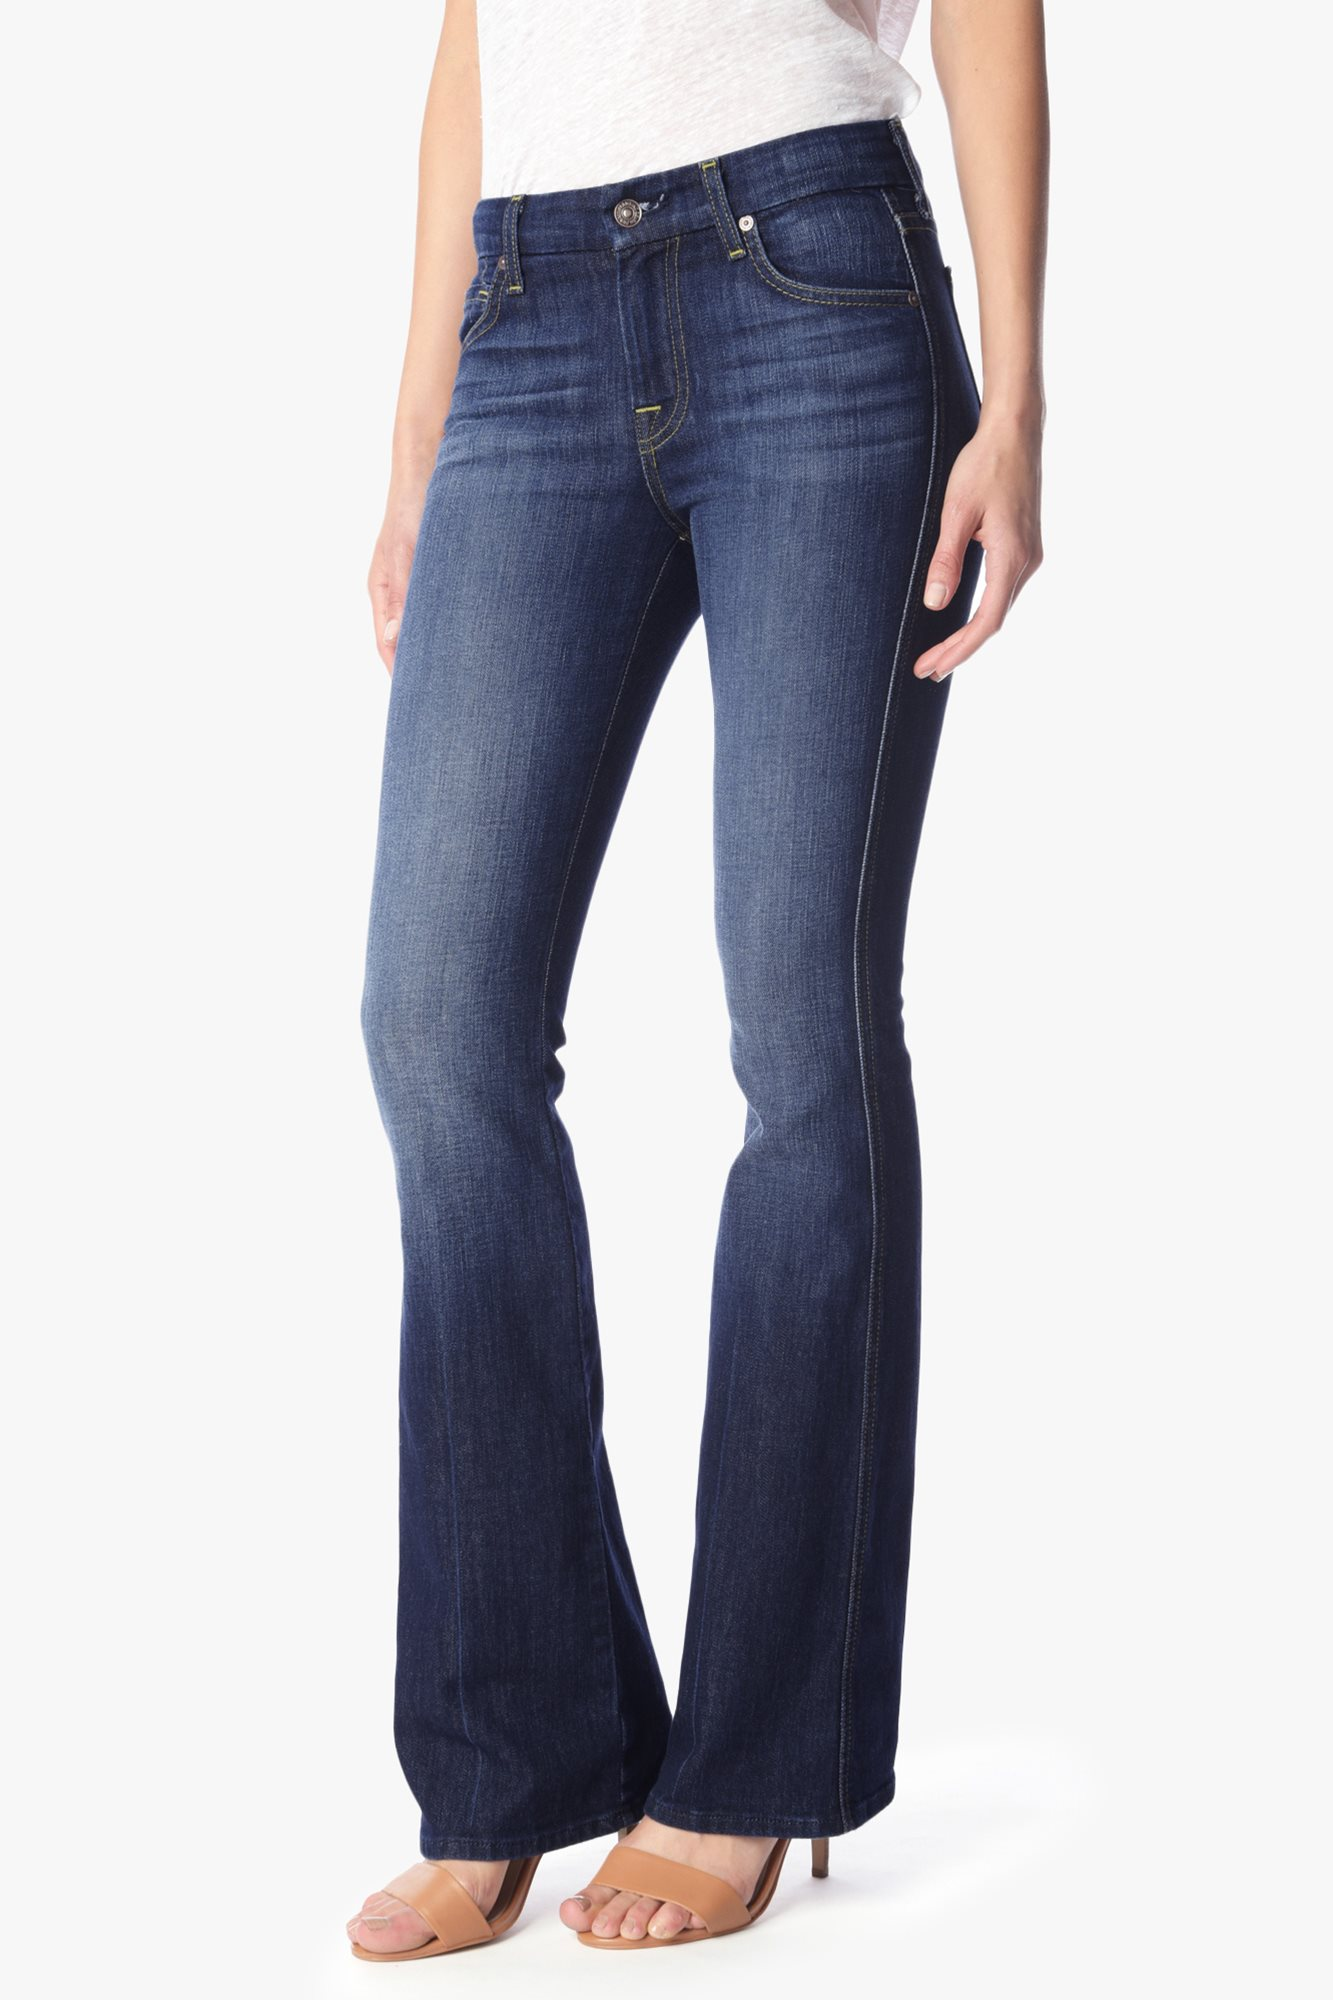 7 For All Mankind Womens A Pocket Flare Jean In Nouveau New York Dark